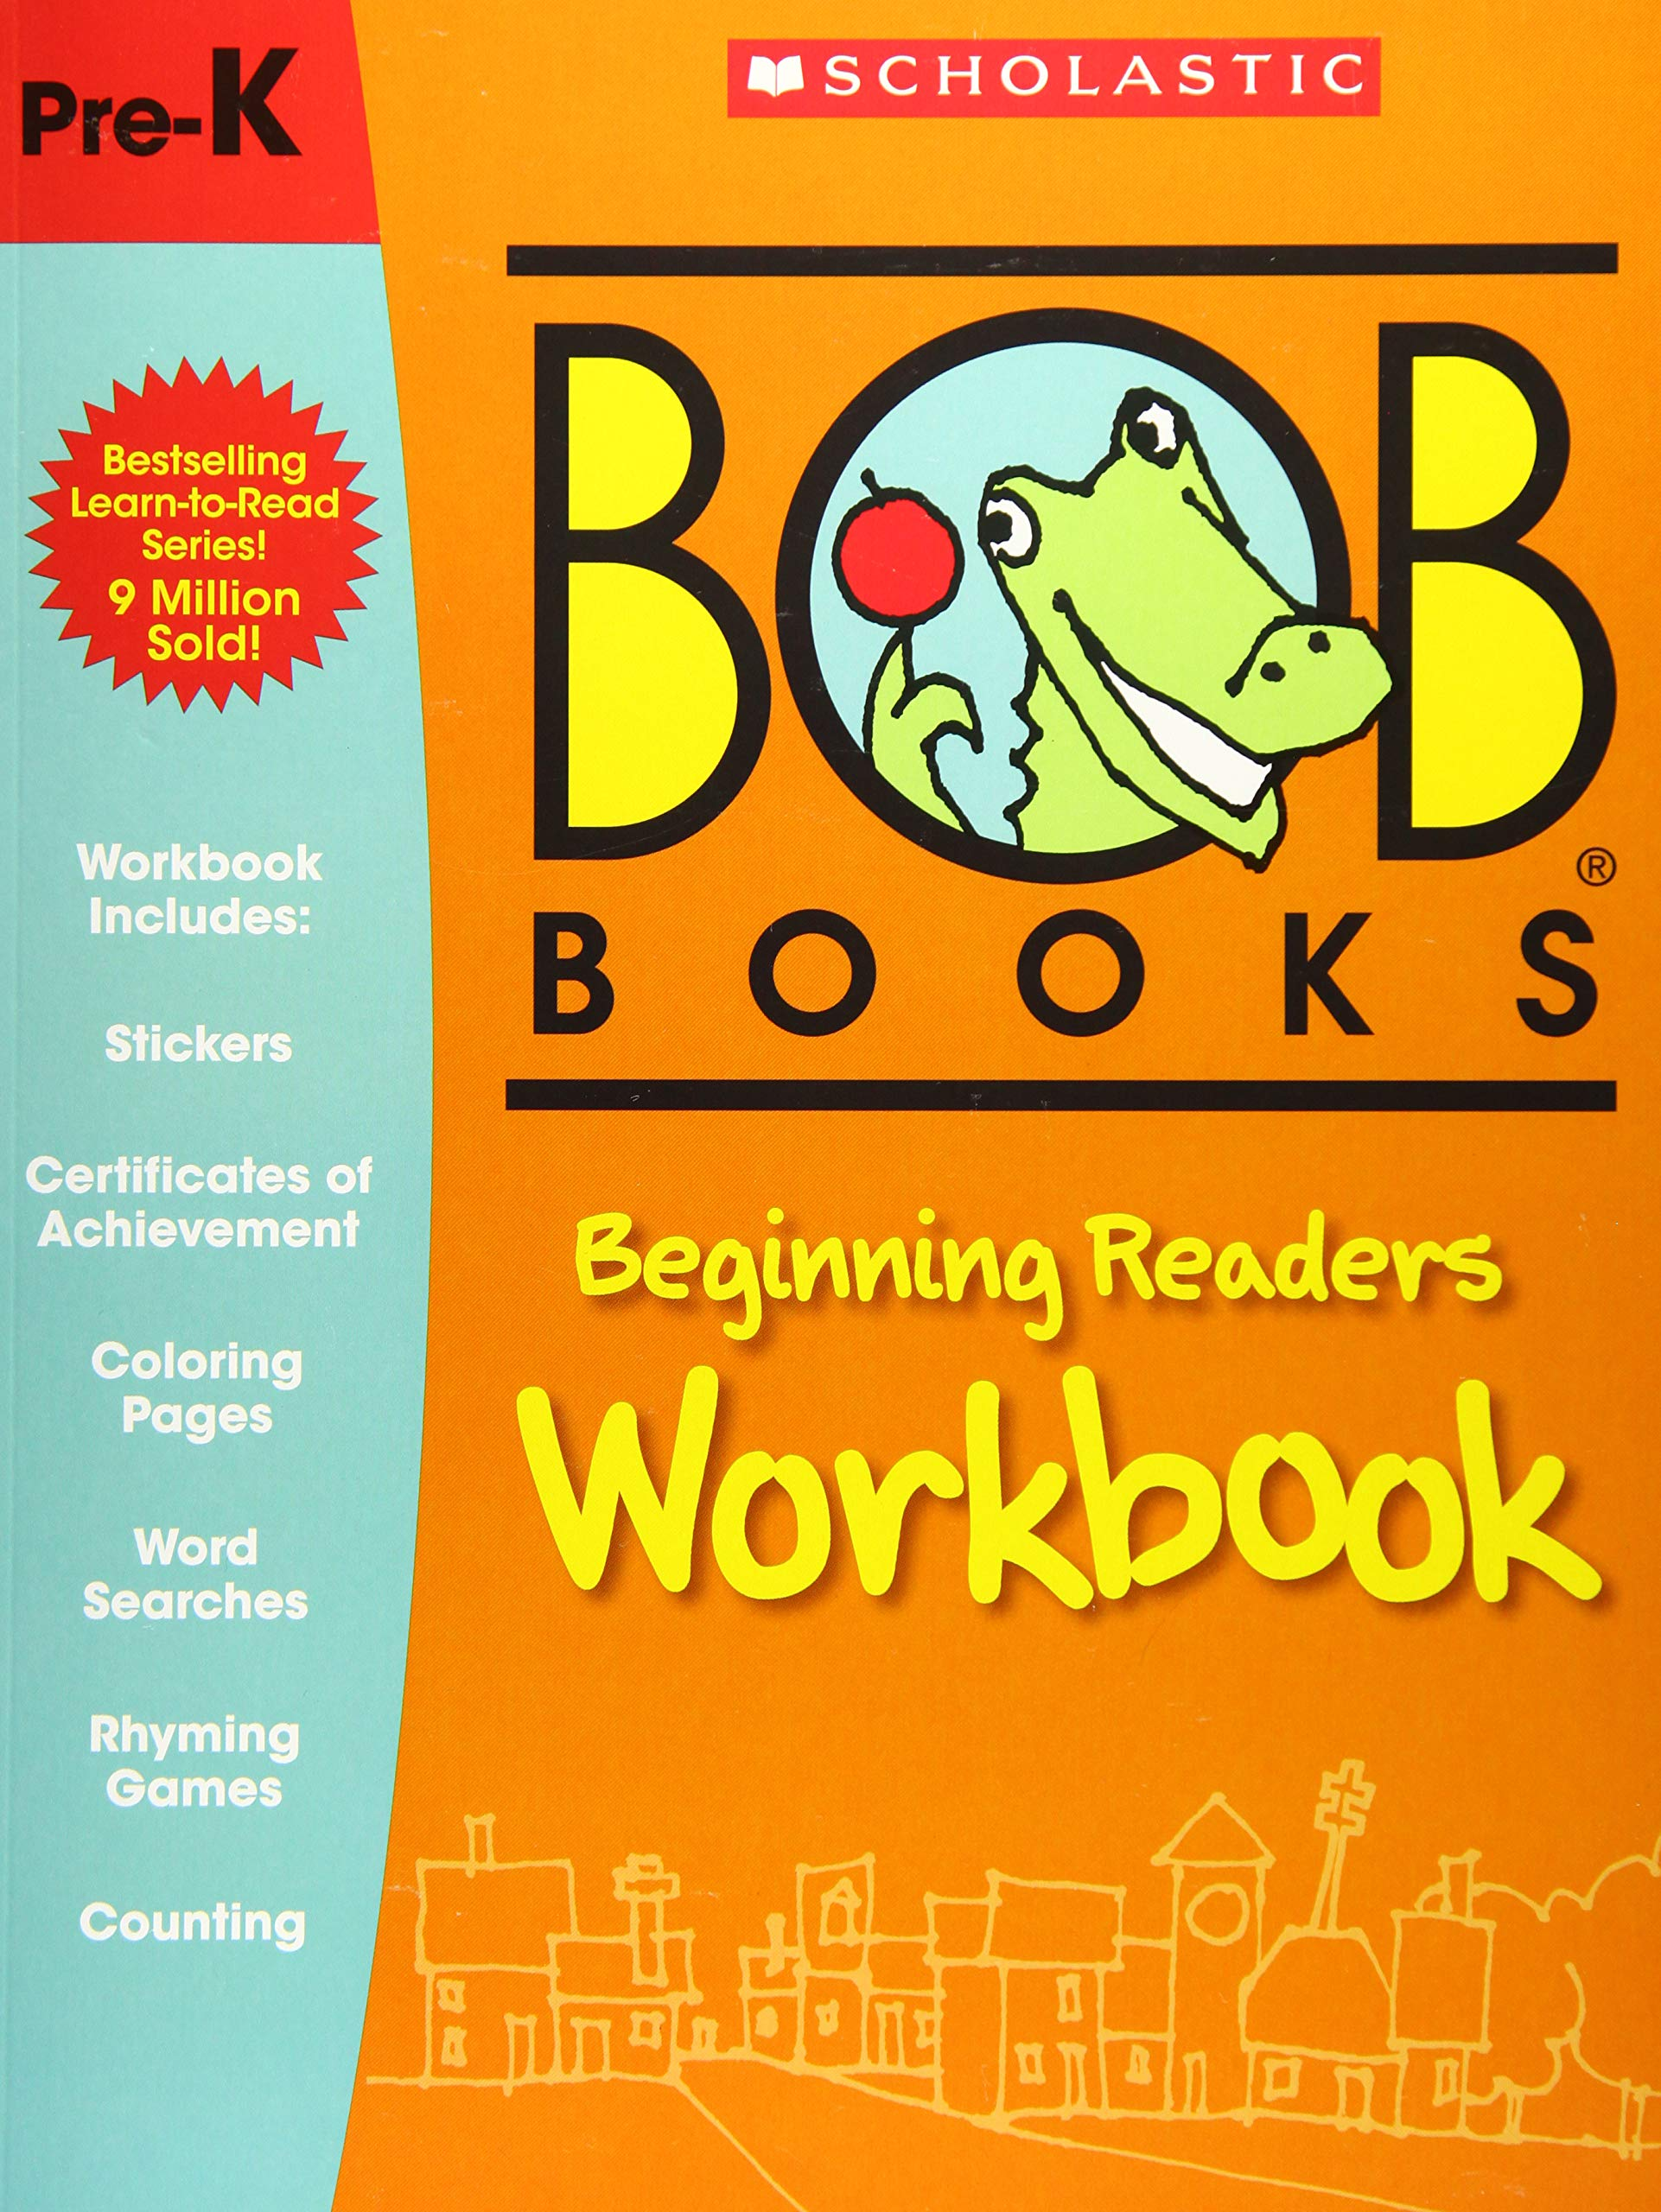 Bob's Books PreK Workbook